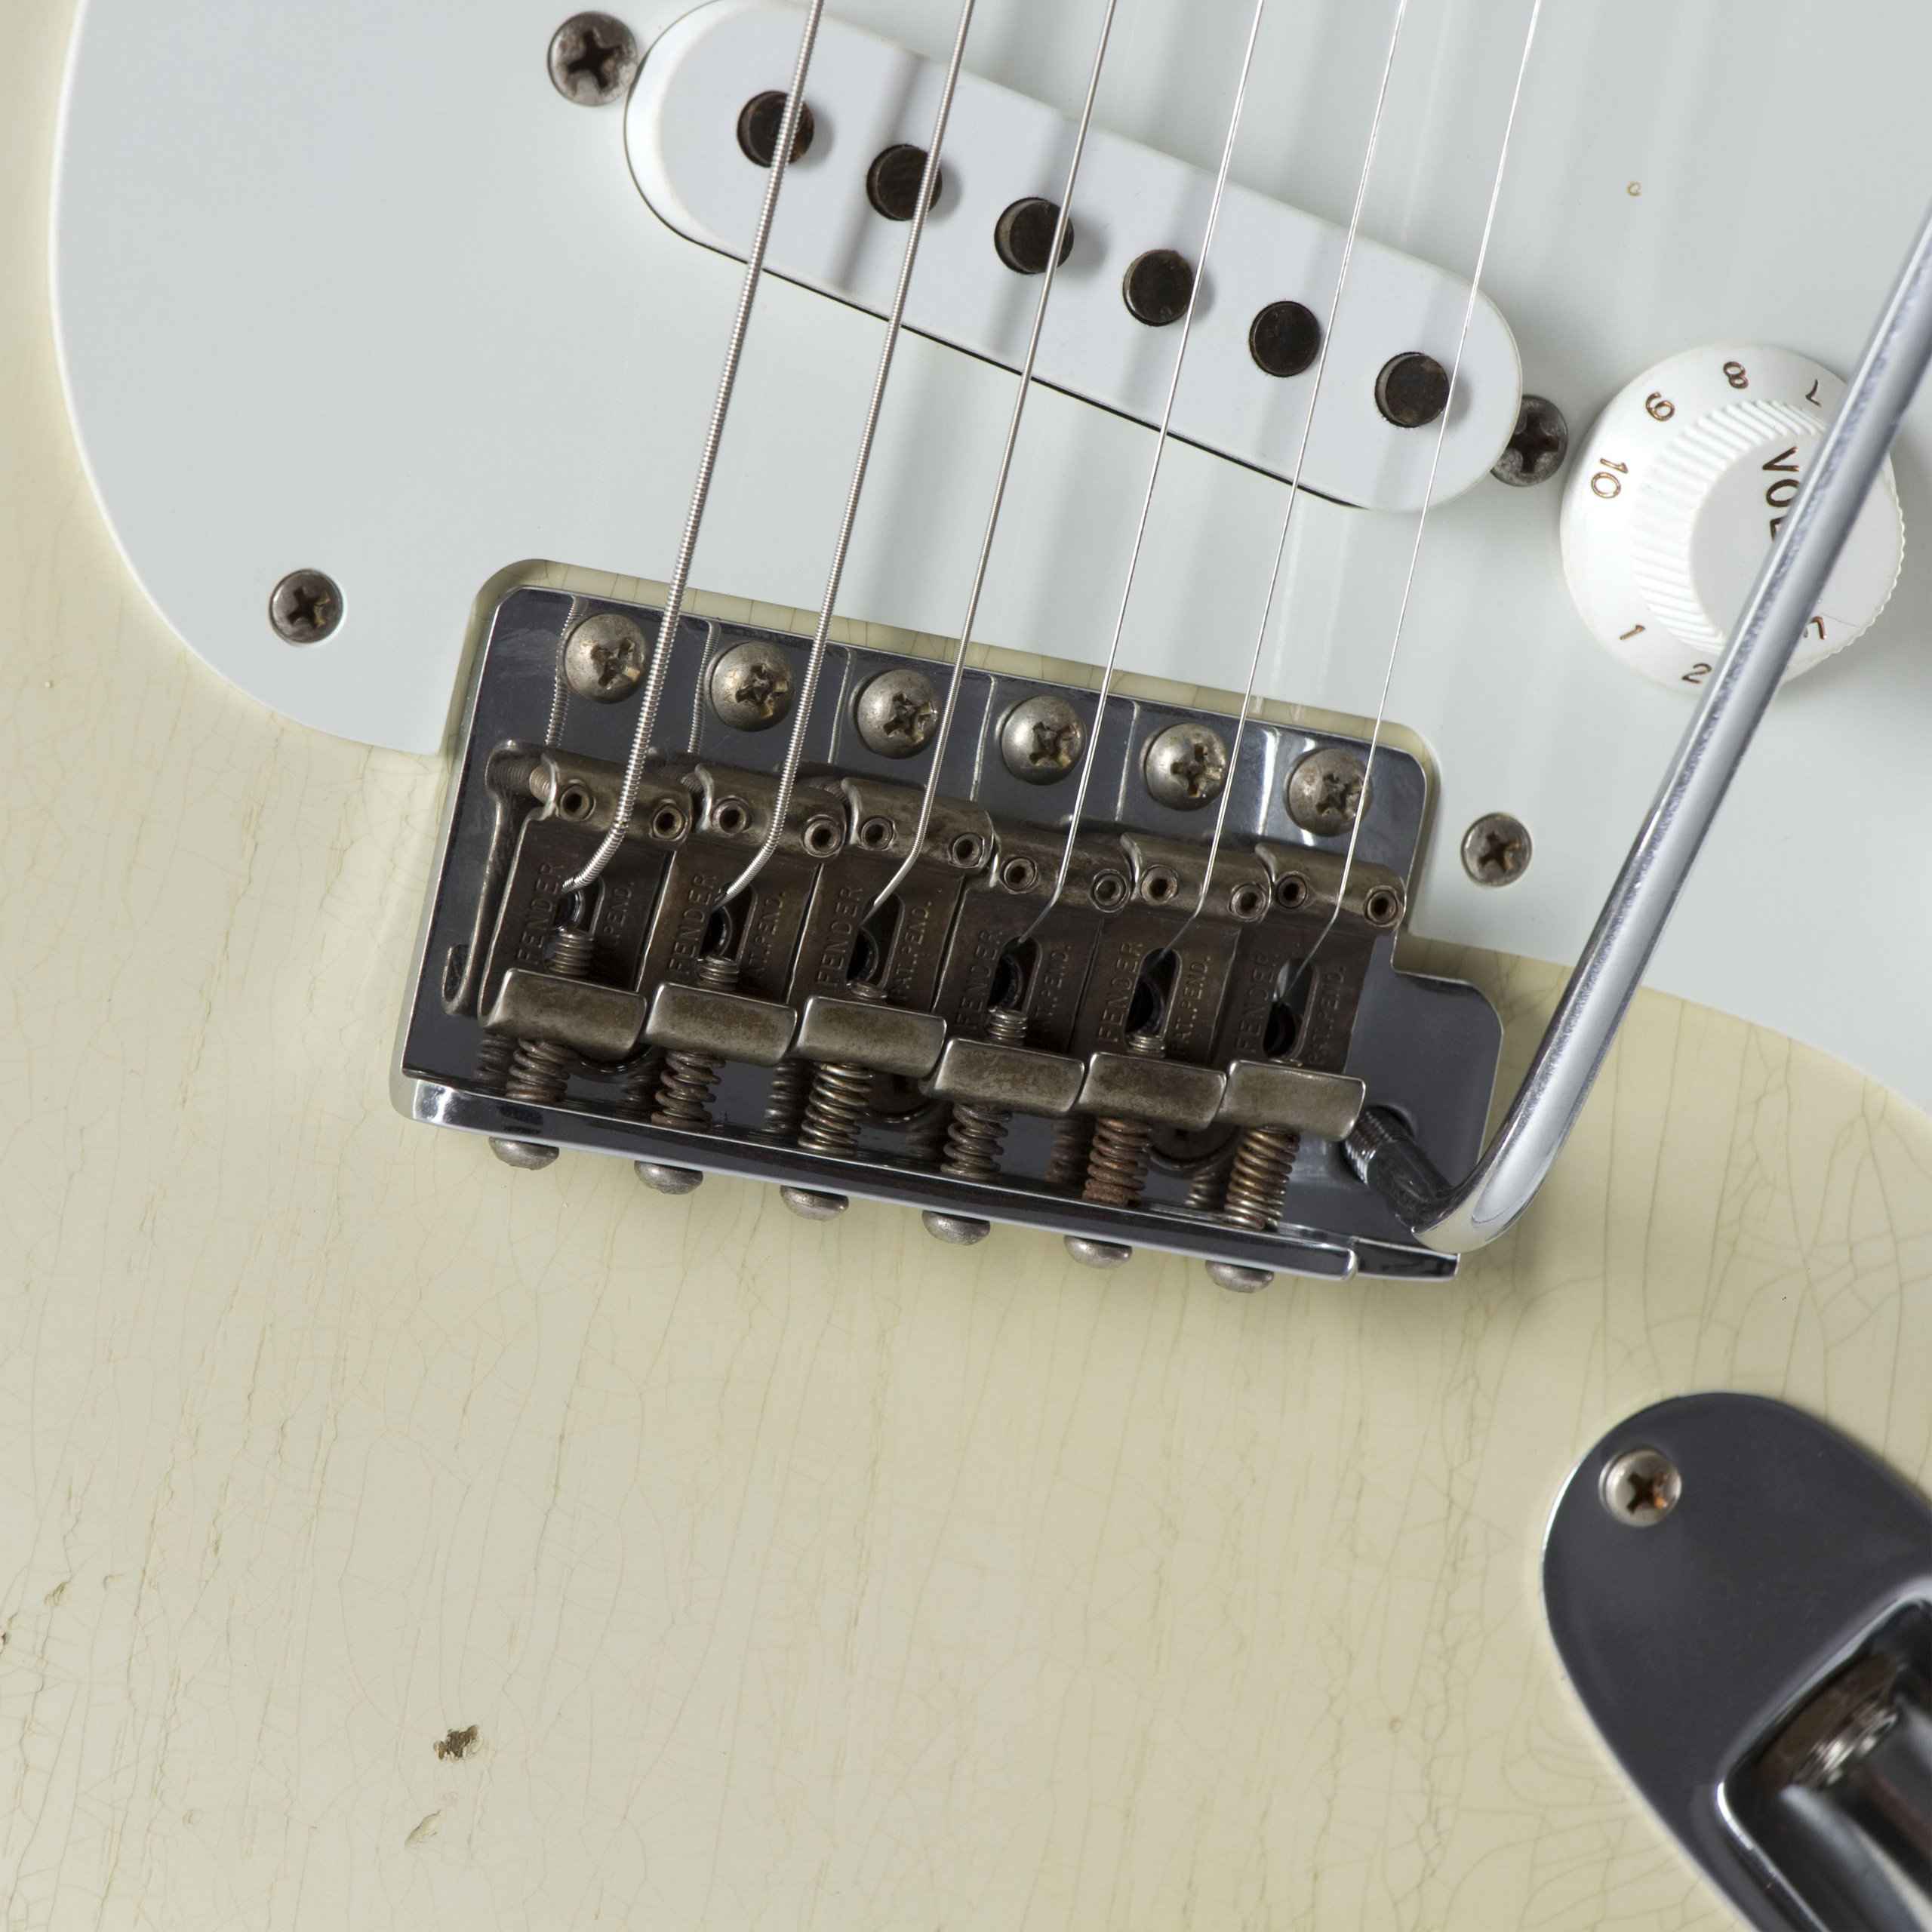 FENDER 1955 Relic Stratocaster Aged Olympic White #CZ524081 Tremolo